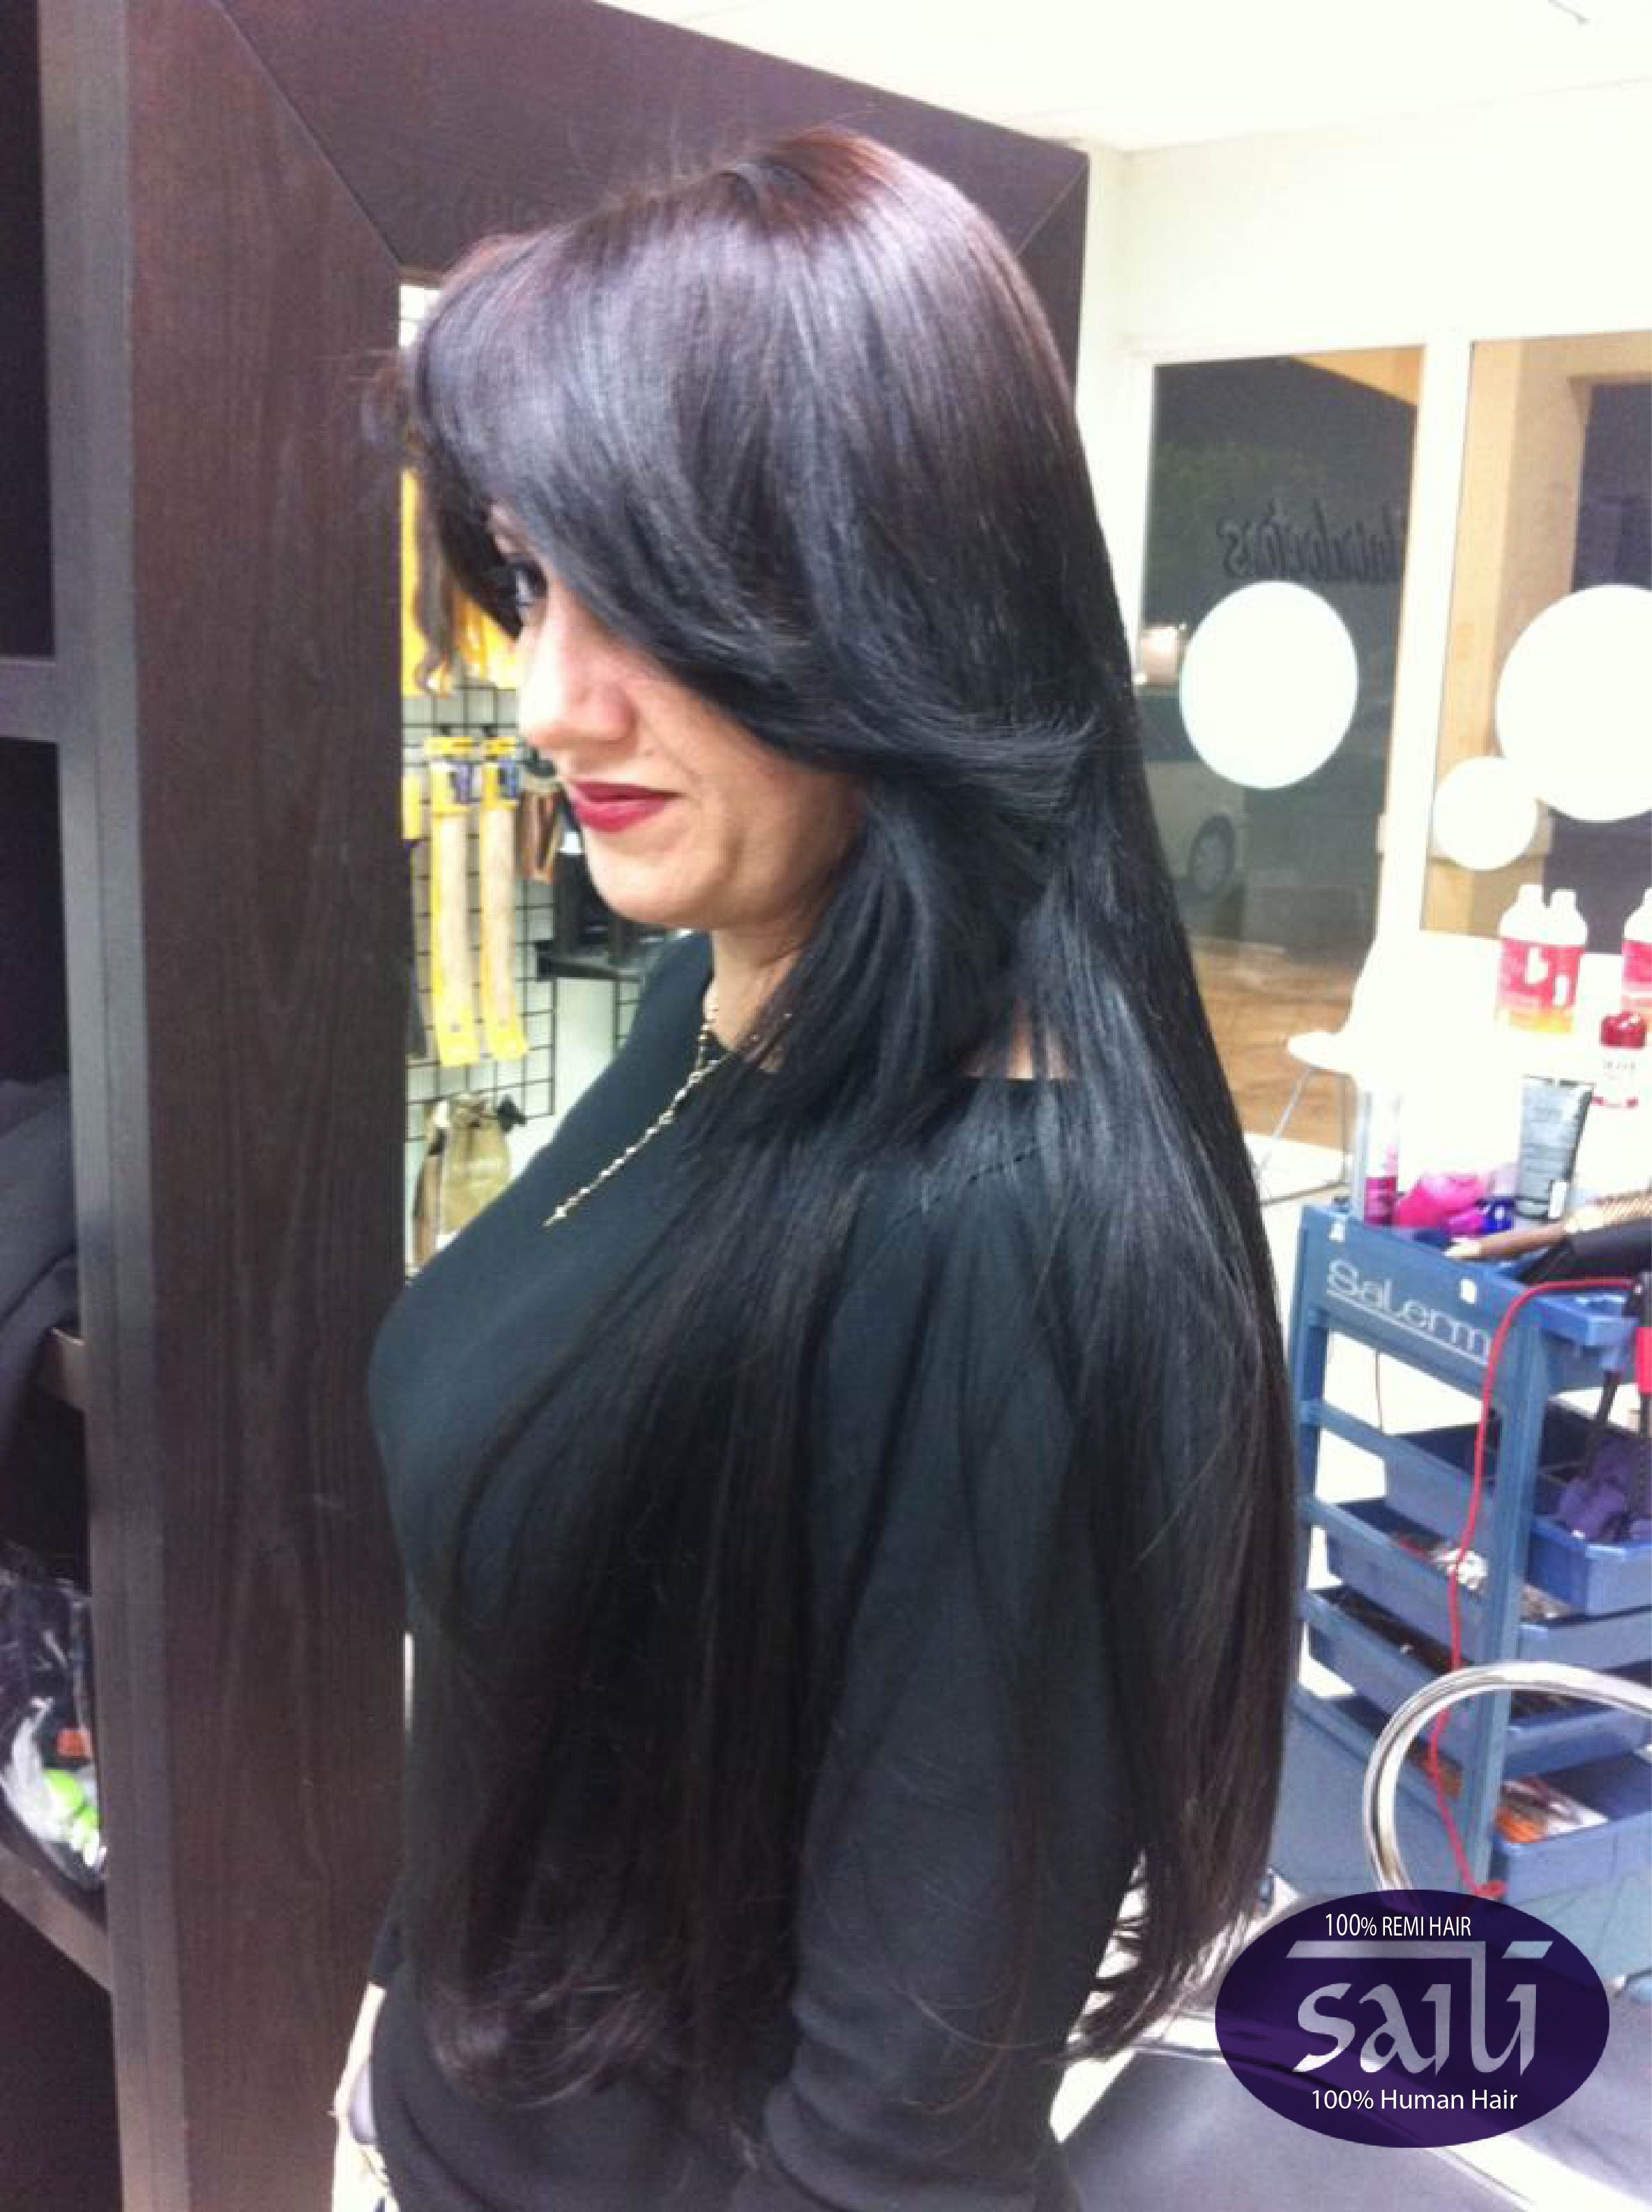 Beautiful Tape Hairextensions Work Done At The Tamiami